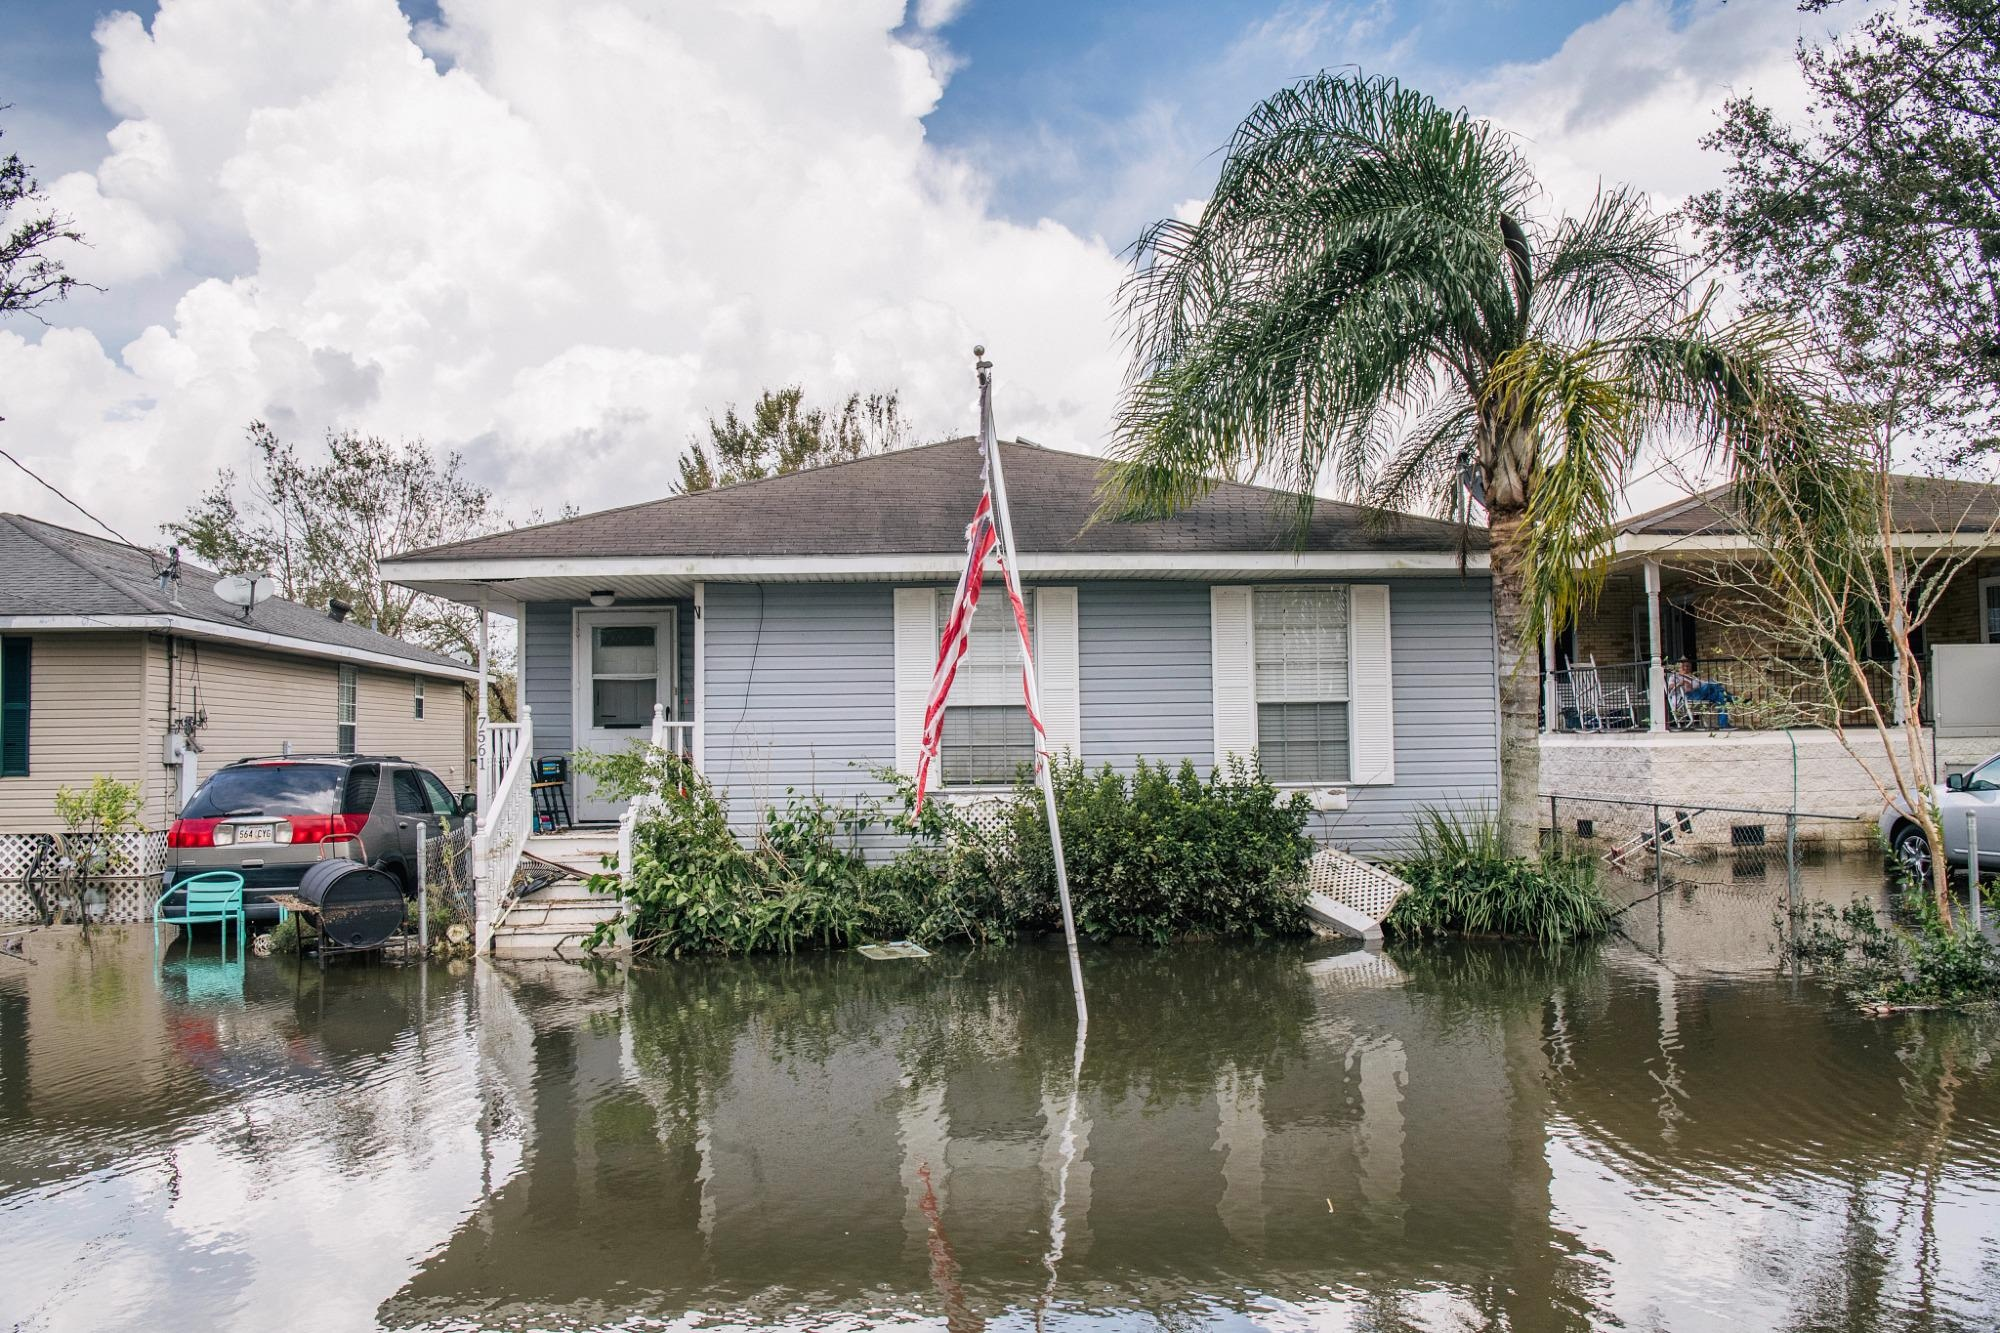 Inland Flooding Responsible for Damage and Deaths from Tropical Storms, Finds Study.